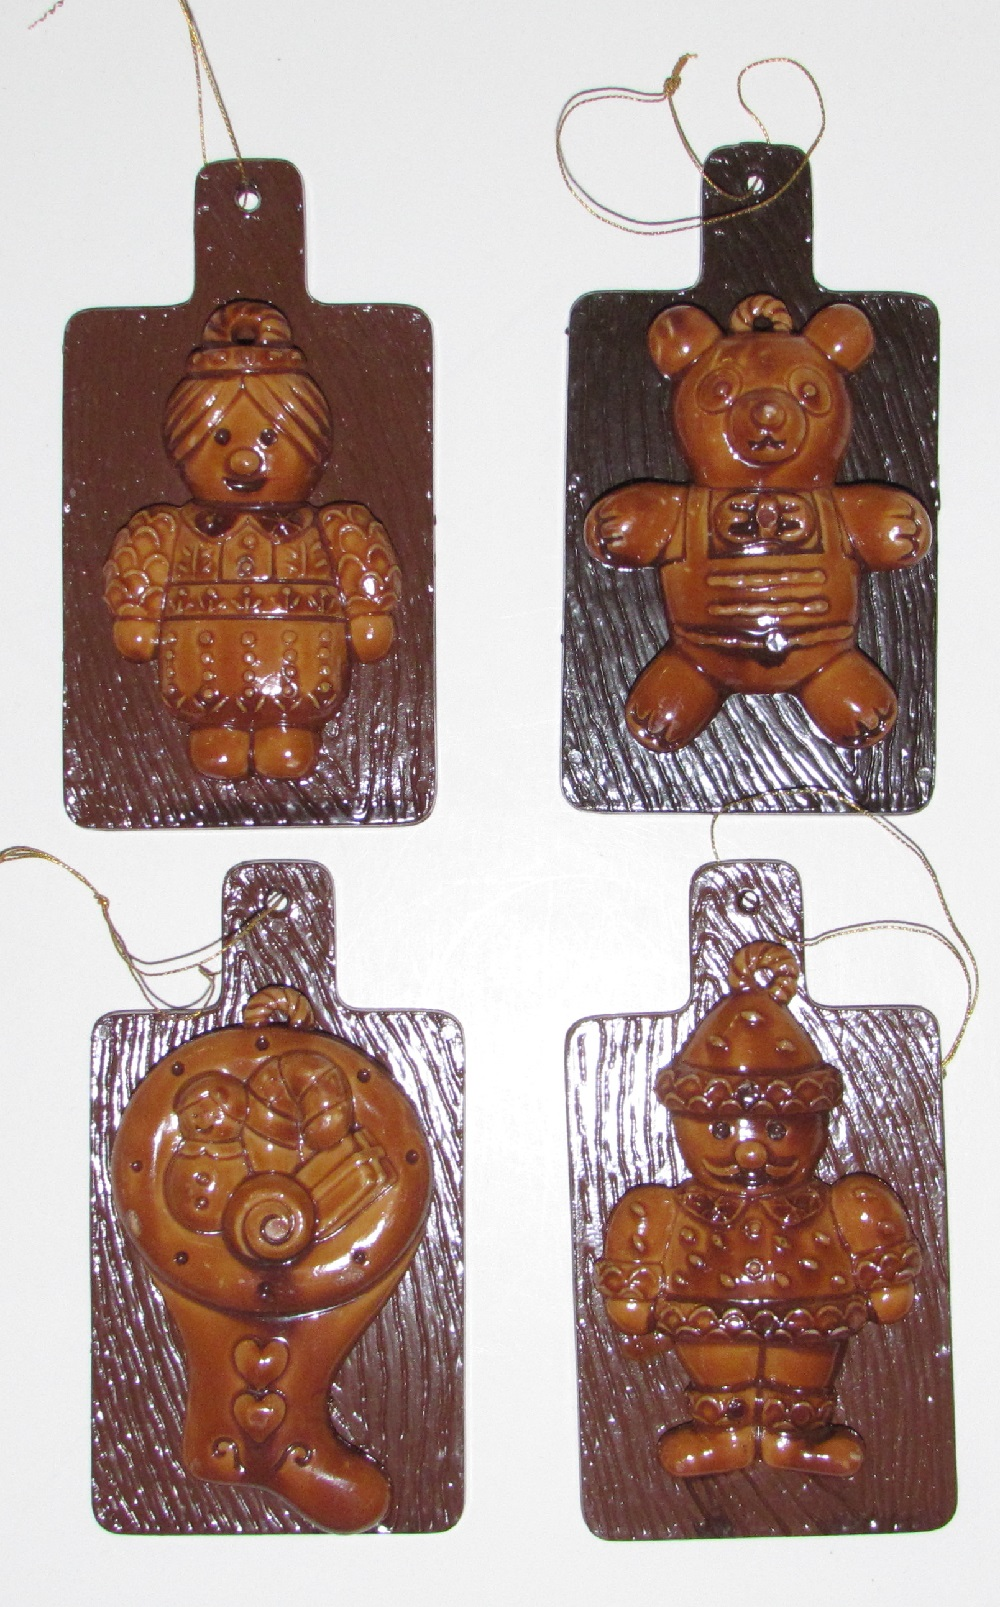 Gingerbread Figures - Plastic - 4 inch - assorted - 4 styles.